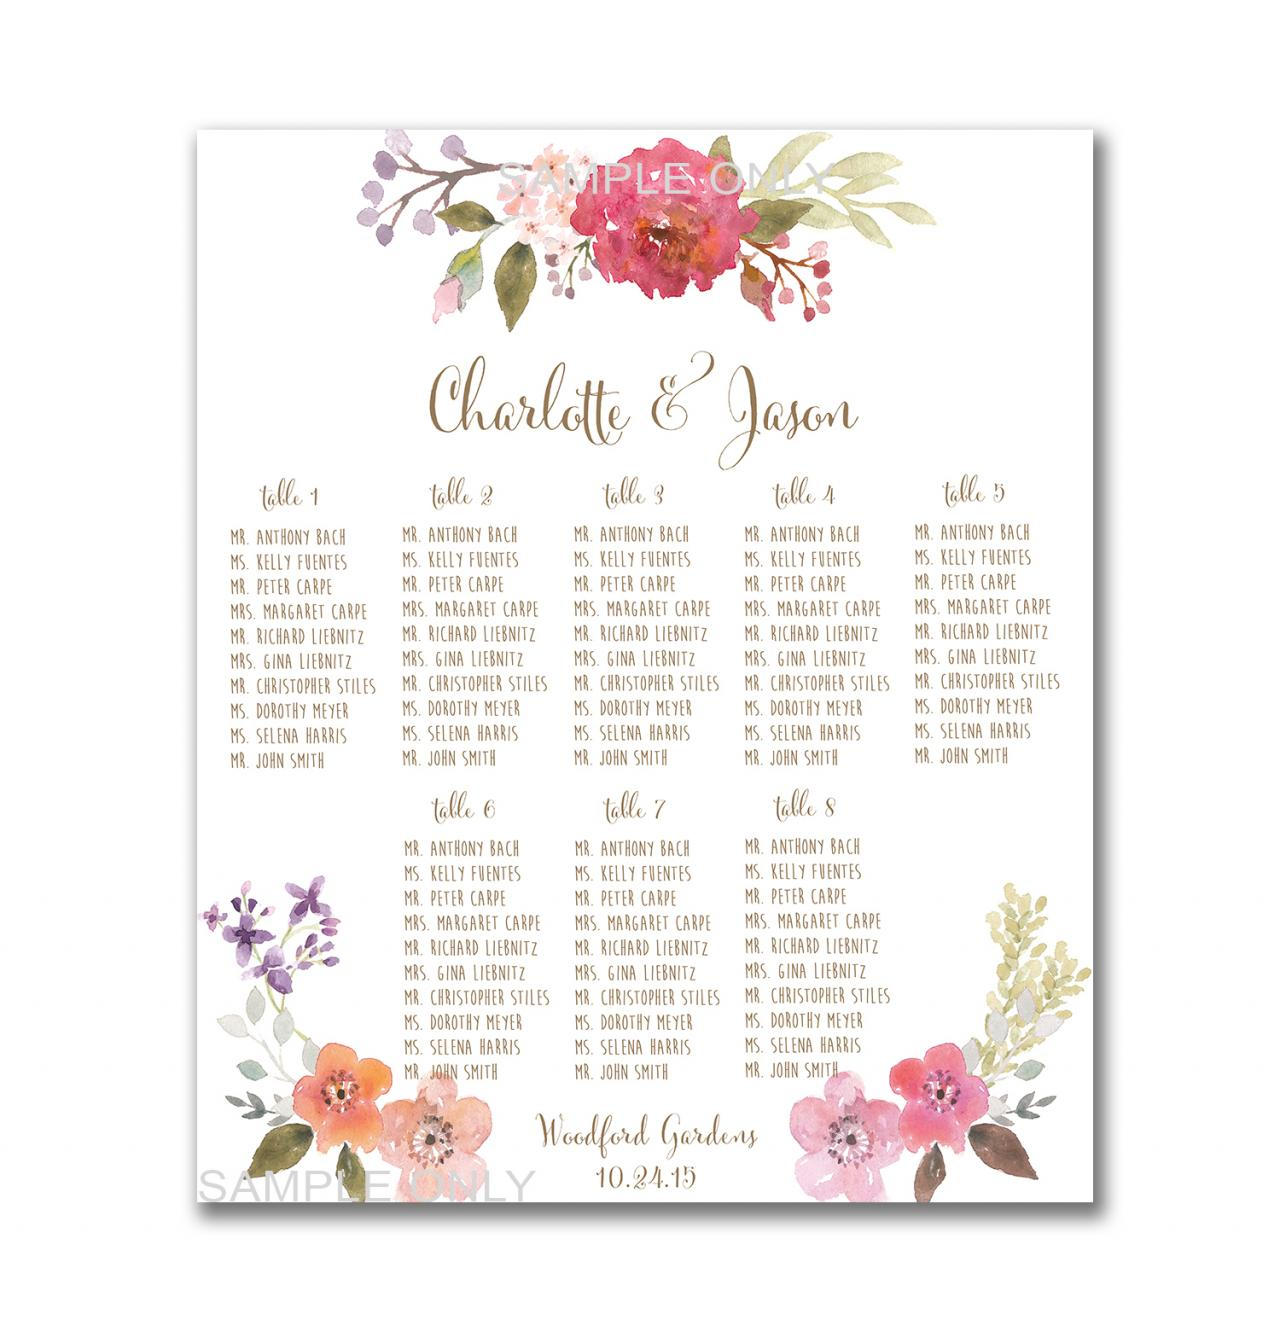 Wedding Table Seating Chart PRINTABLE 50 130 Guests – Guest Seating Chart Template